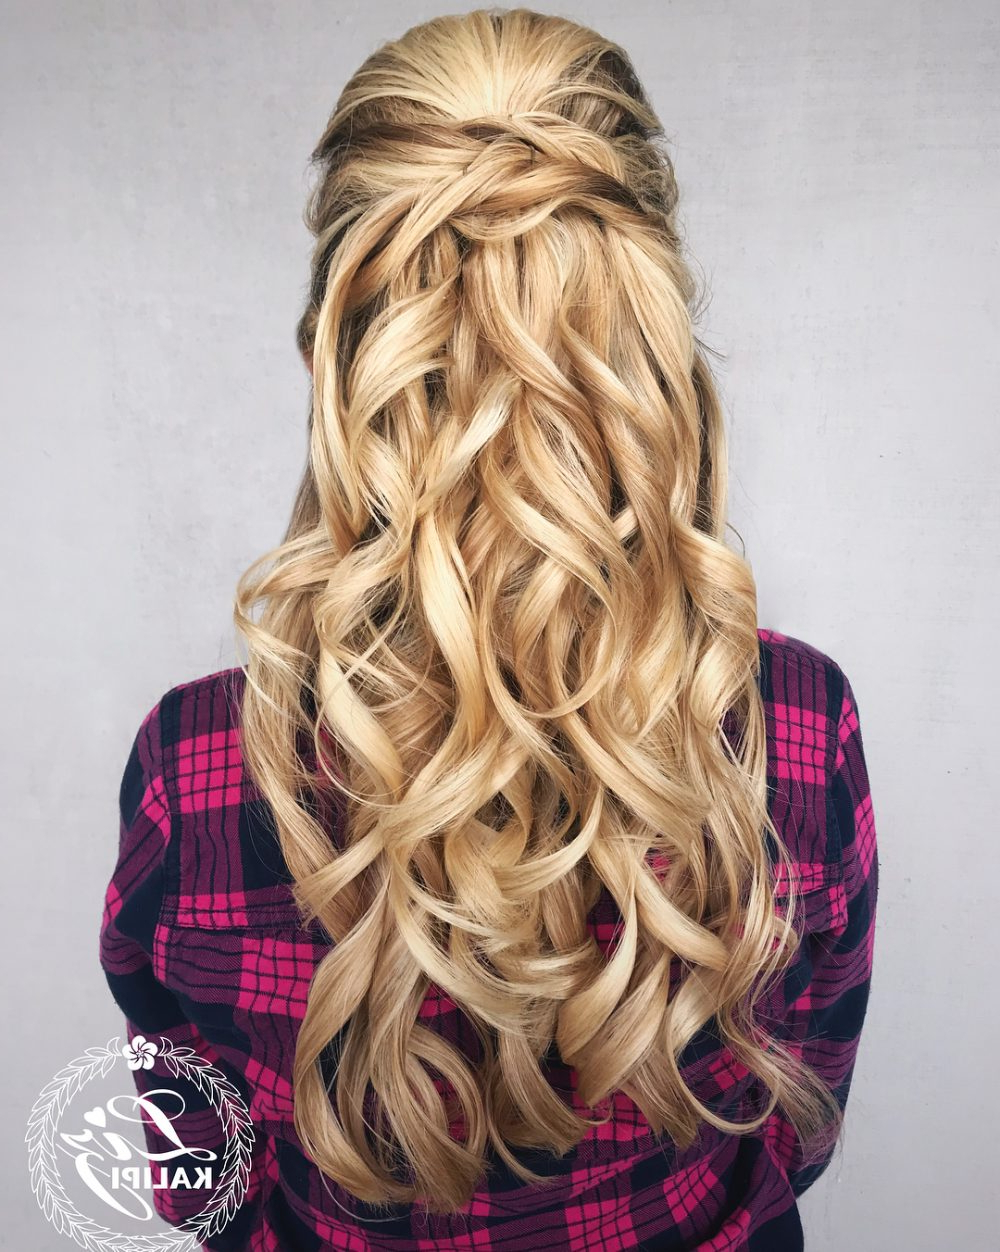 Best And Newest Cascading Waves Prom Hairstyles For Long Hair With 31 Prom Hairstyles For Long Hair That Are Gorgeous In (View 6 of 20)